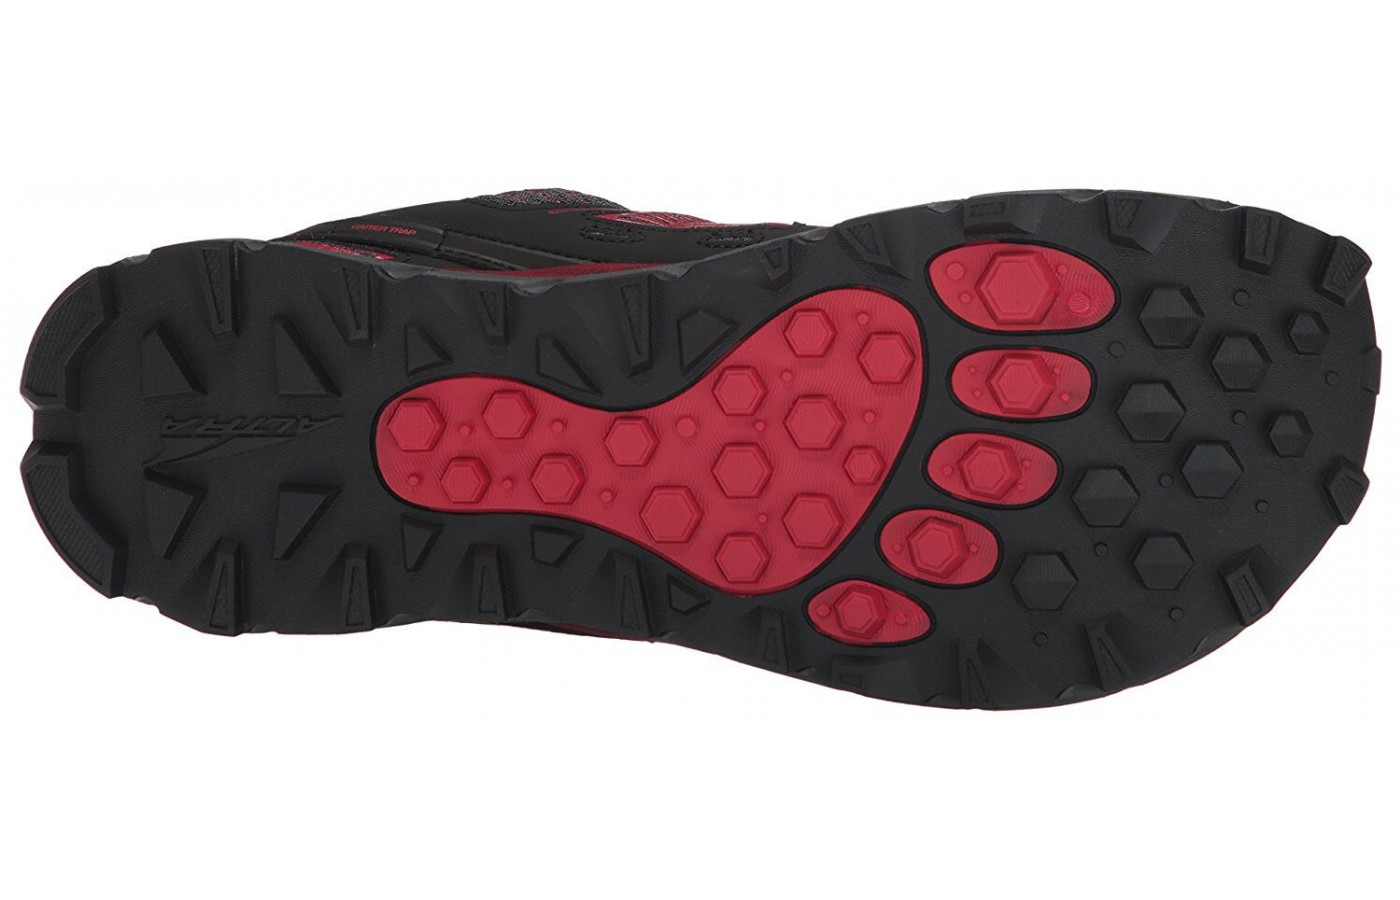 The Altra Lone Peak 3.5 has a StoneGuard rock plate